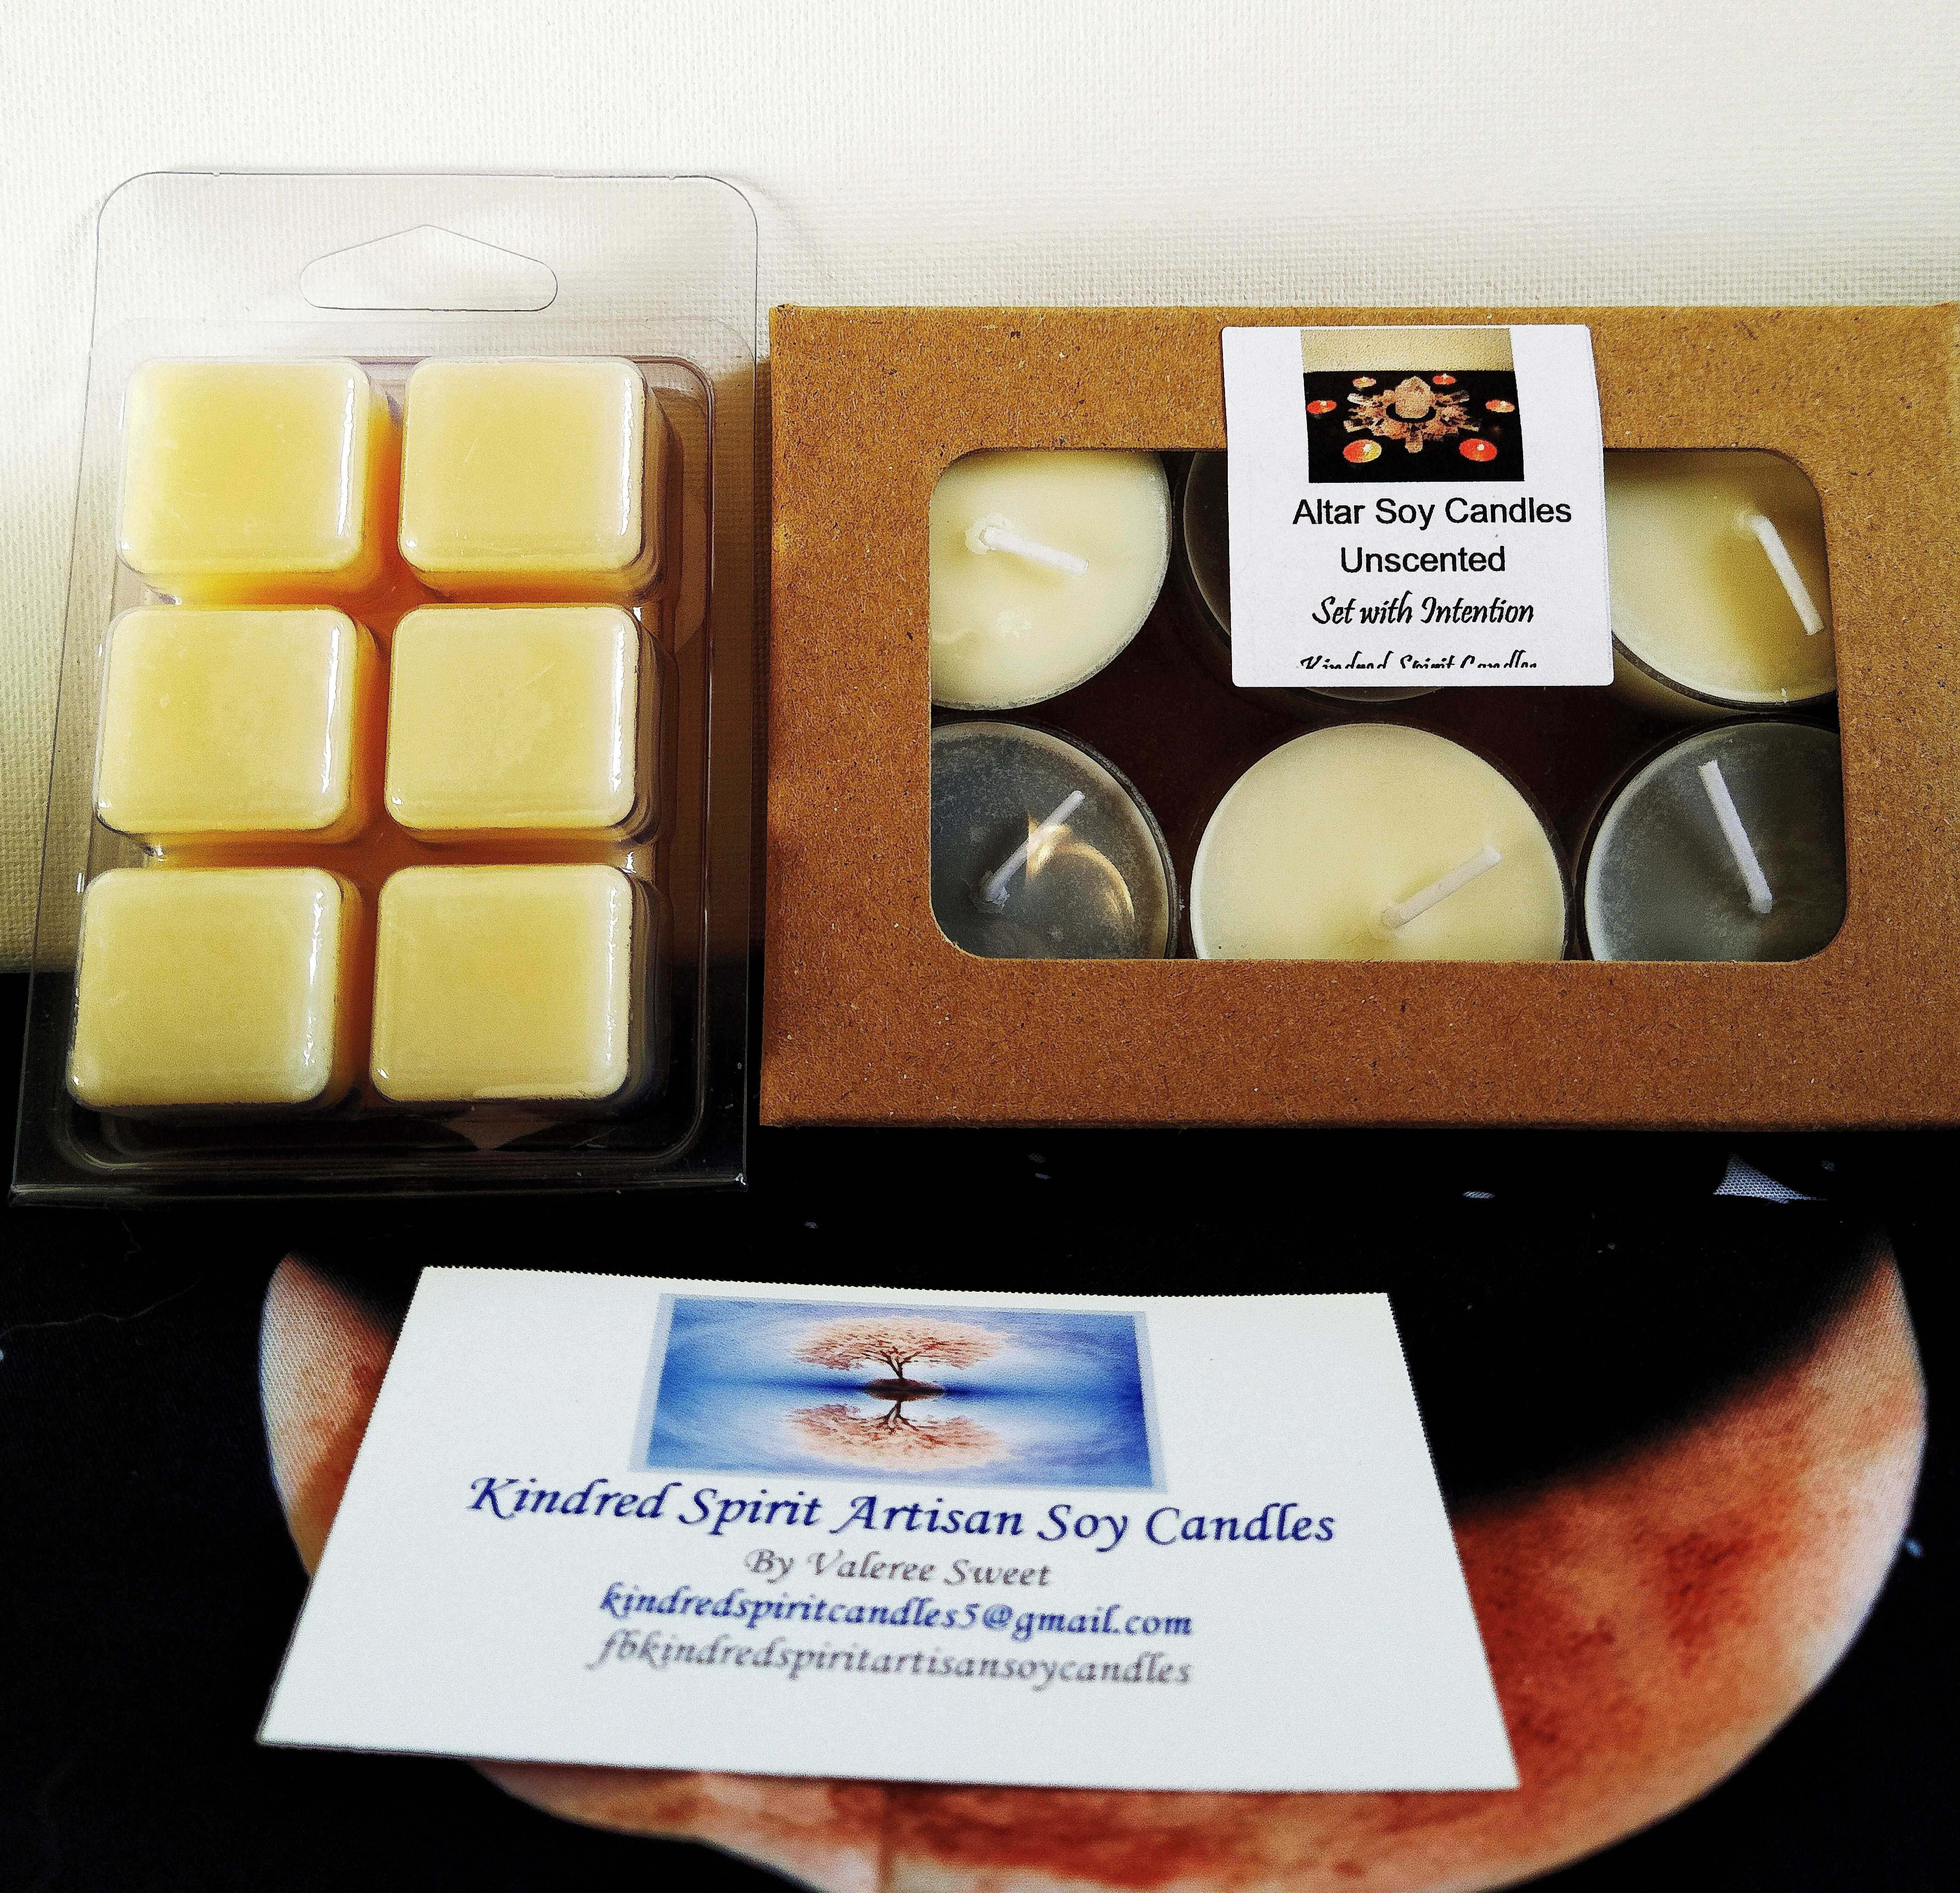 Unscented Soy-Based Altar Candles and Wax Melts